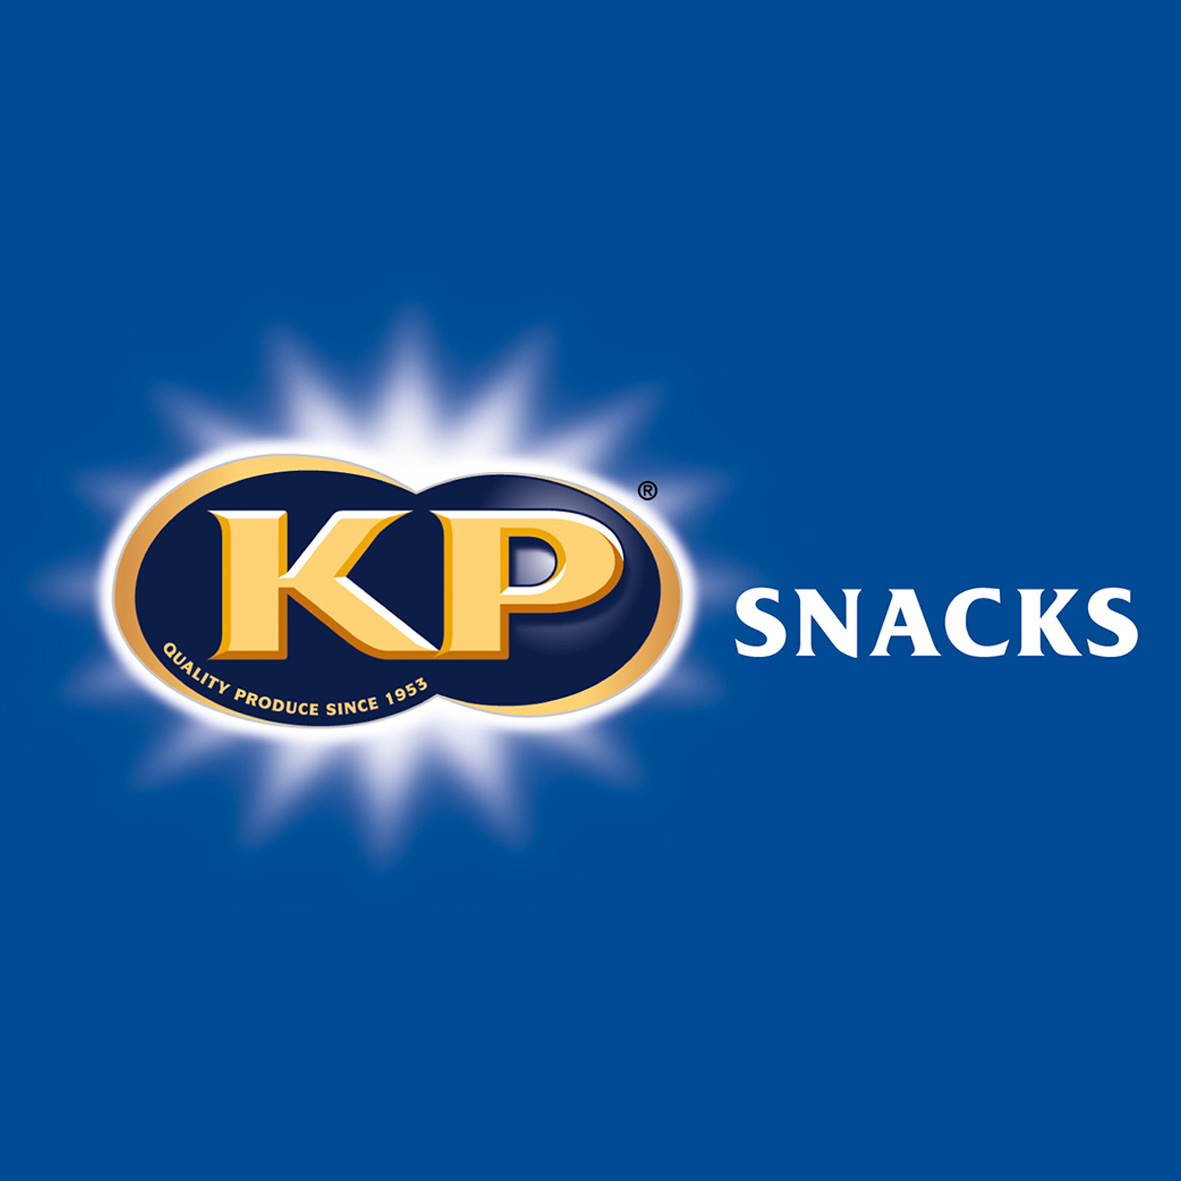 KP-Snacks-LOGO-blue.jpg